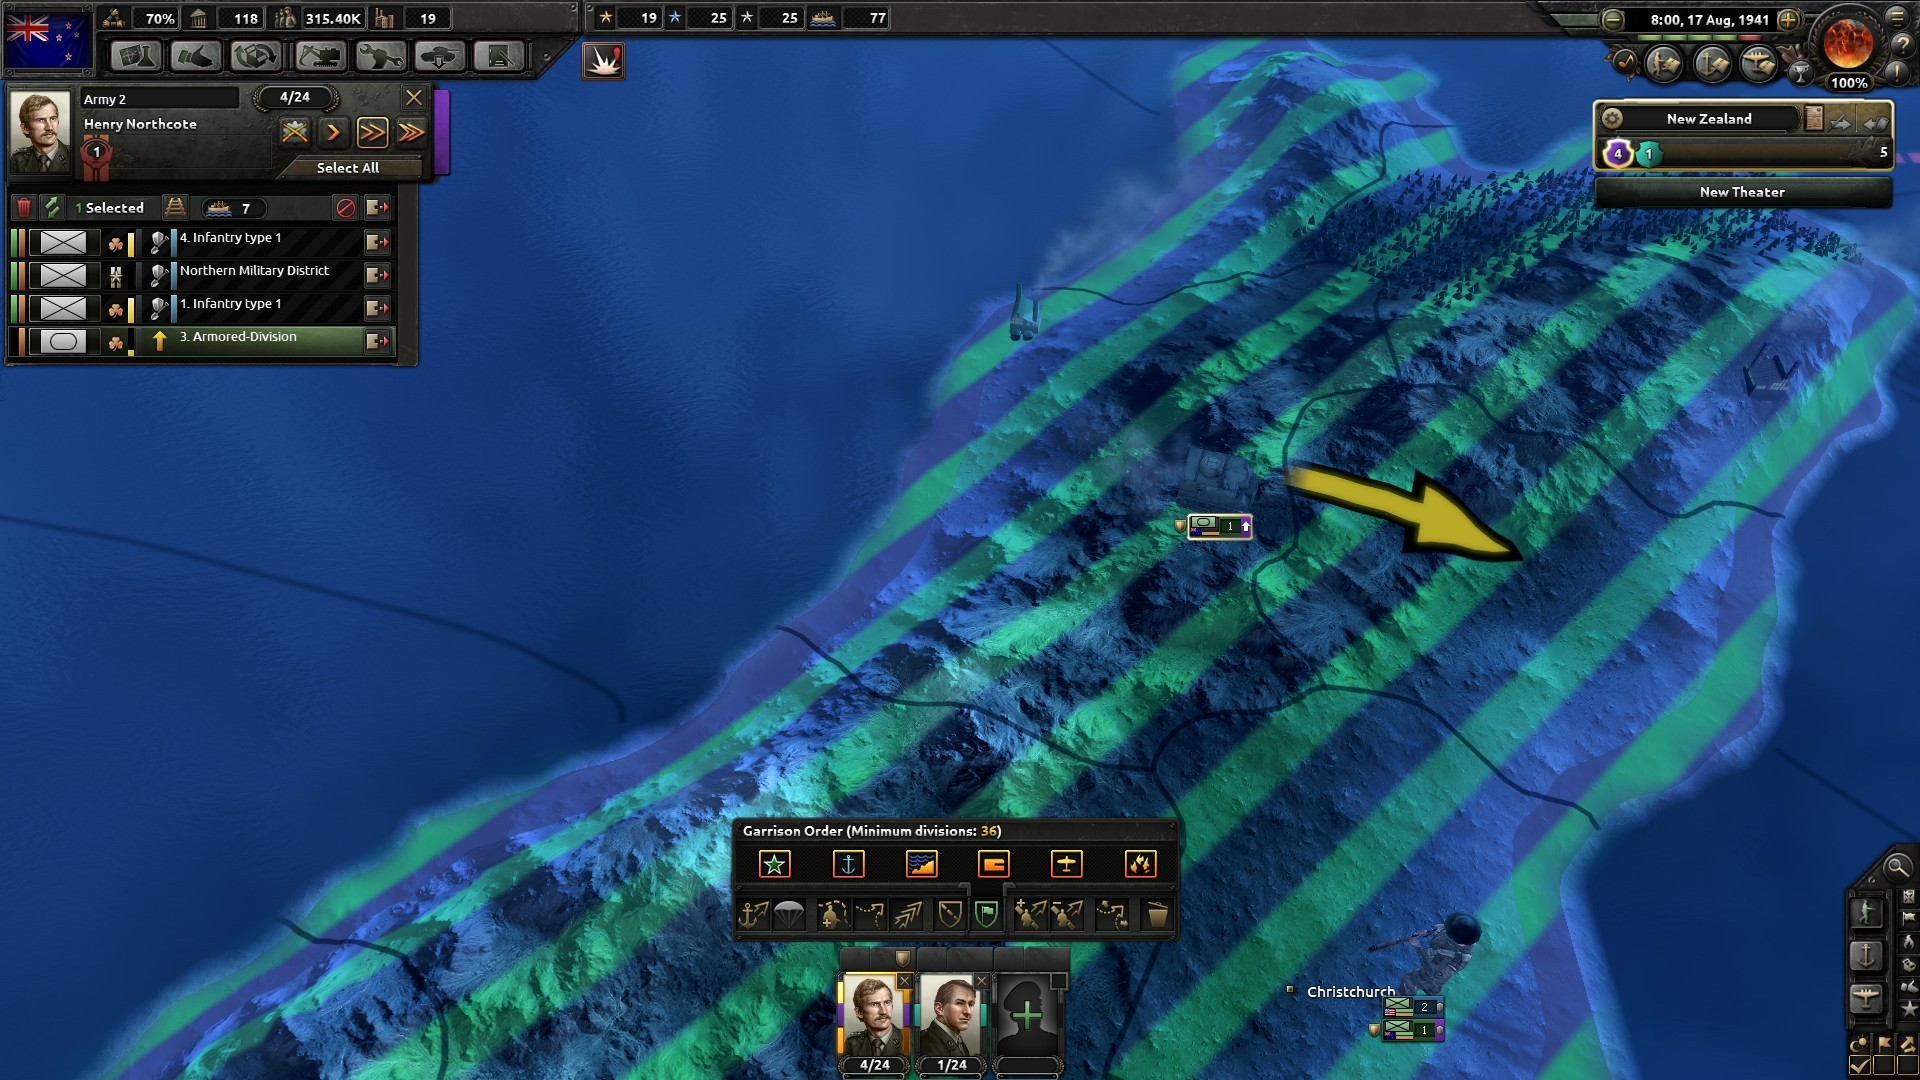 How to sell hearts of iron 4